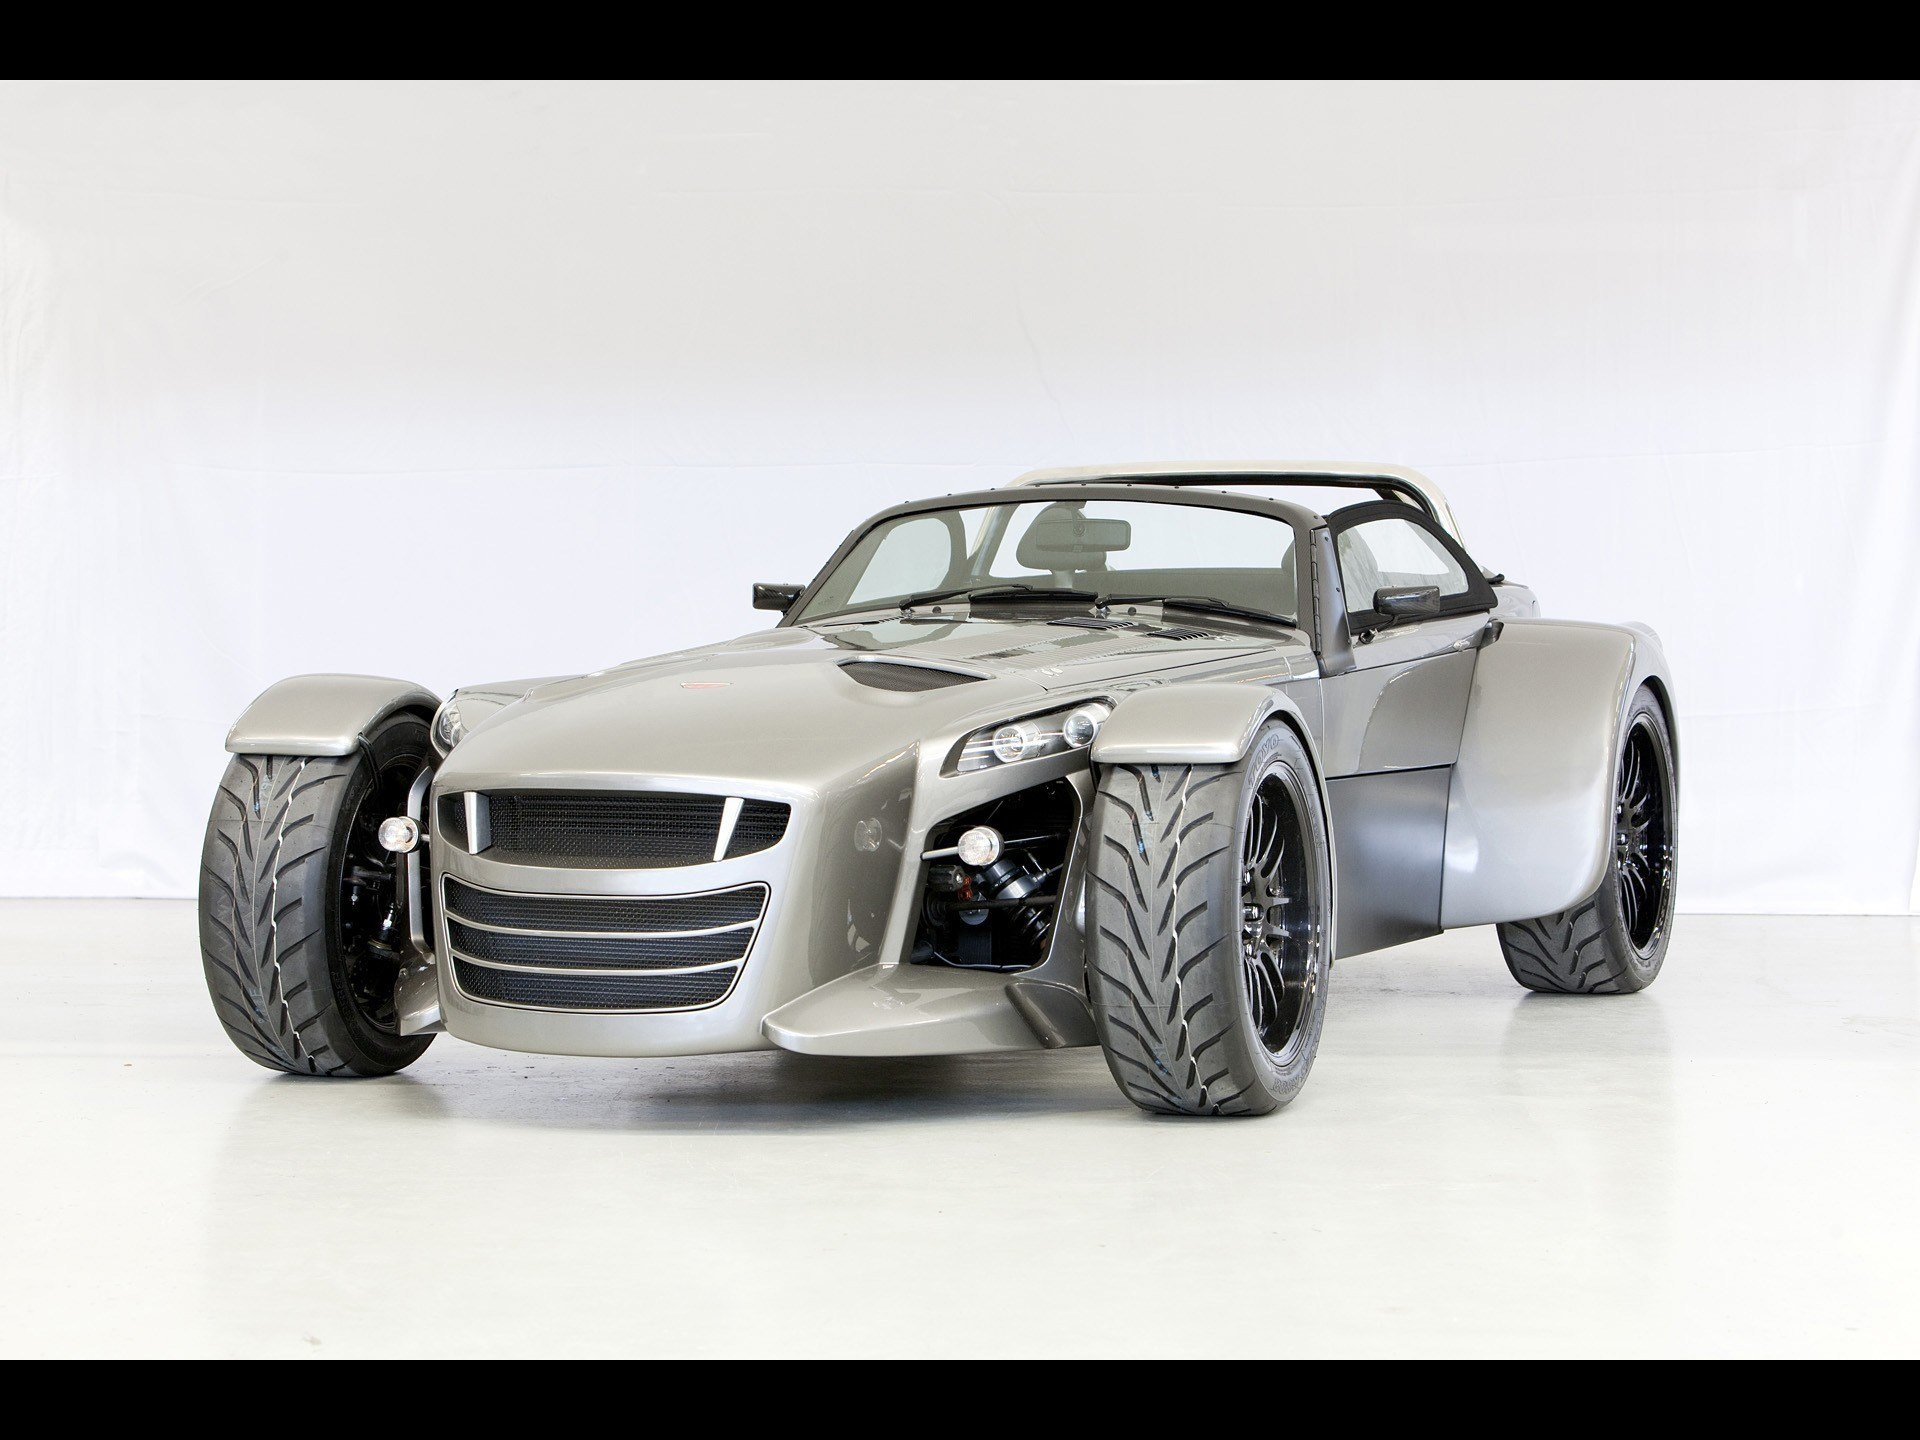 New Cars Vehicles Donkervoort Roadster Donkervoort D8 Gto On This Month